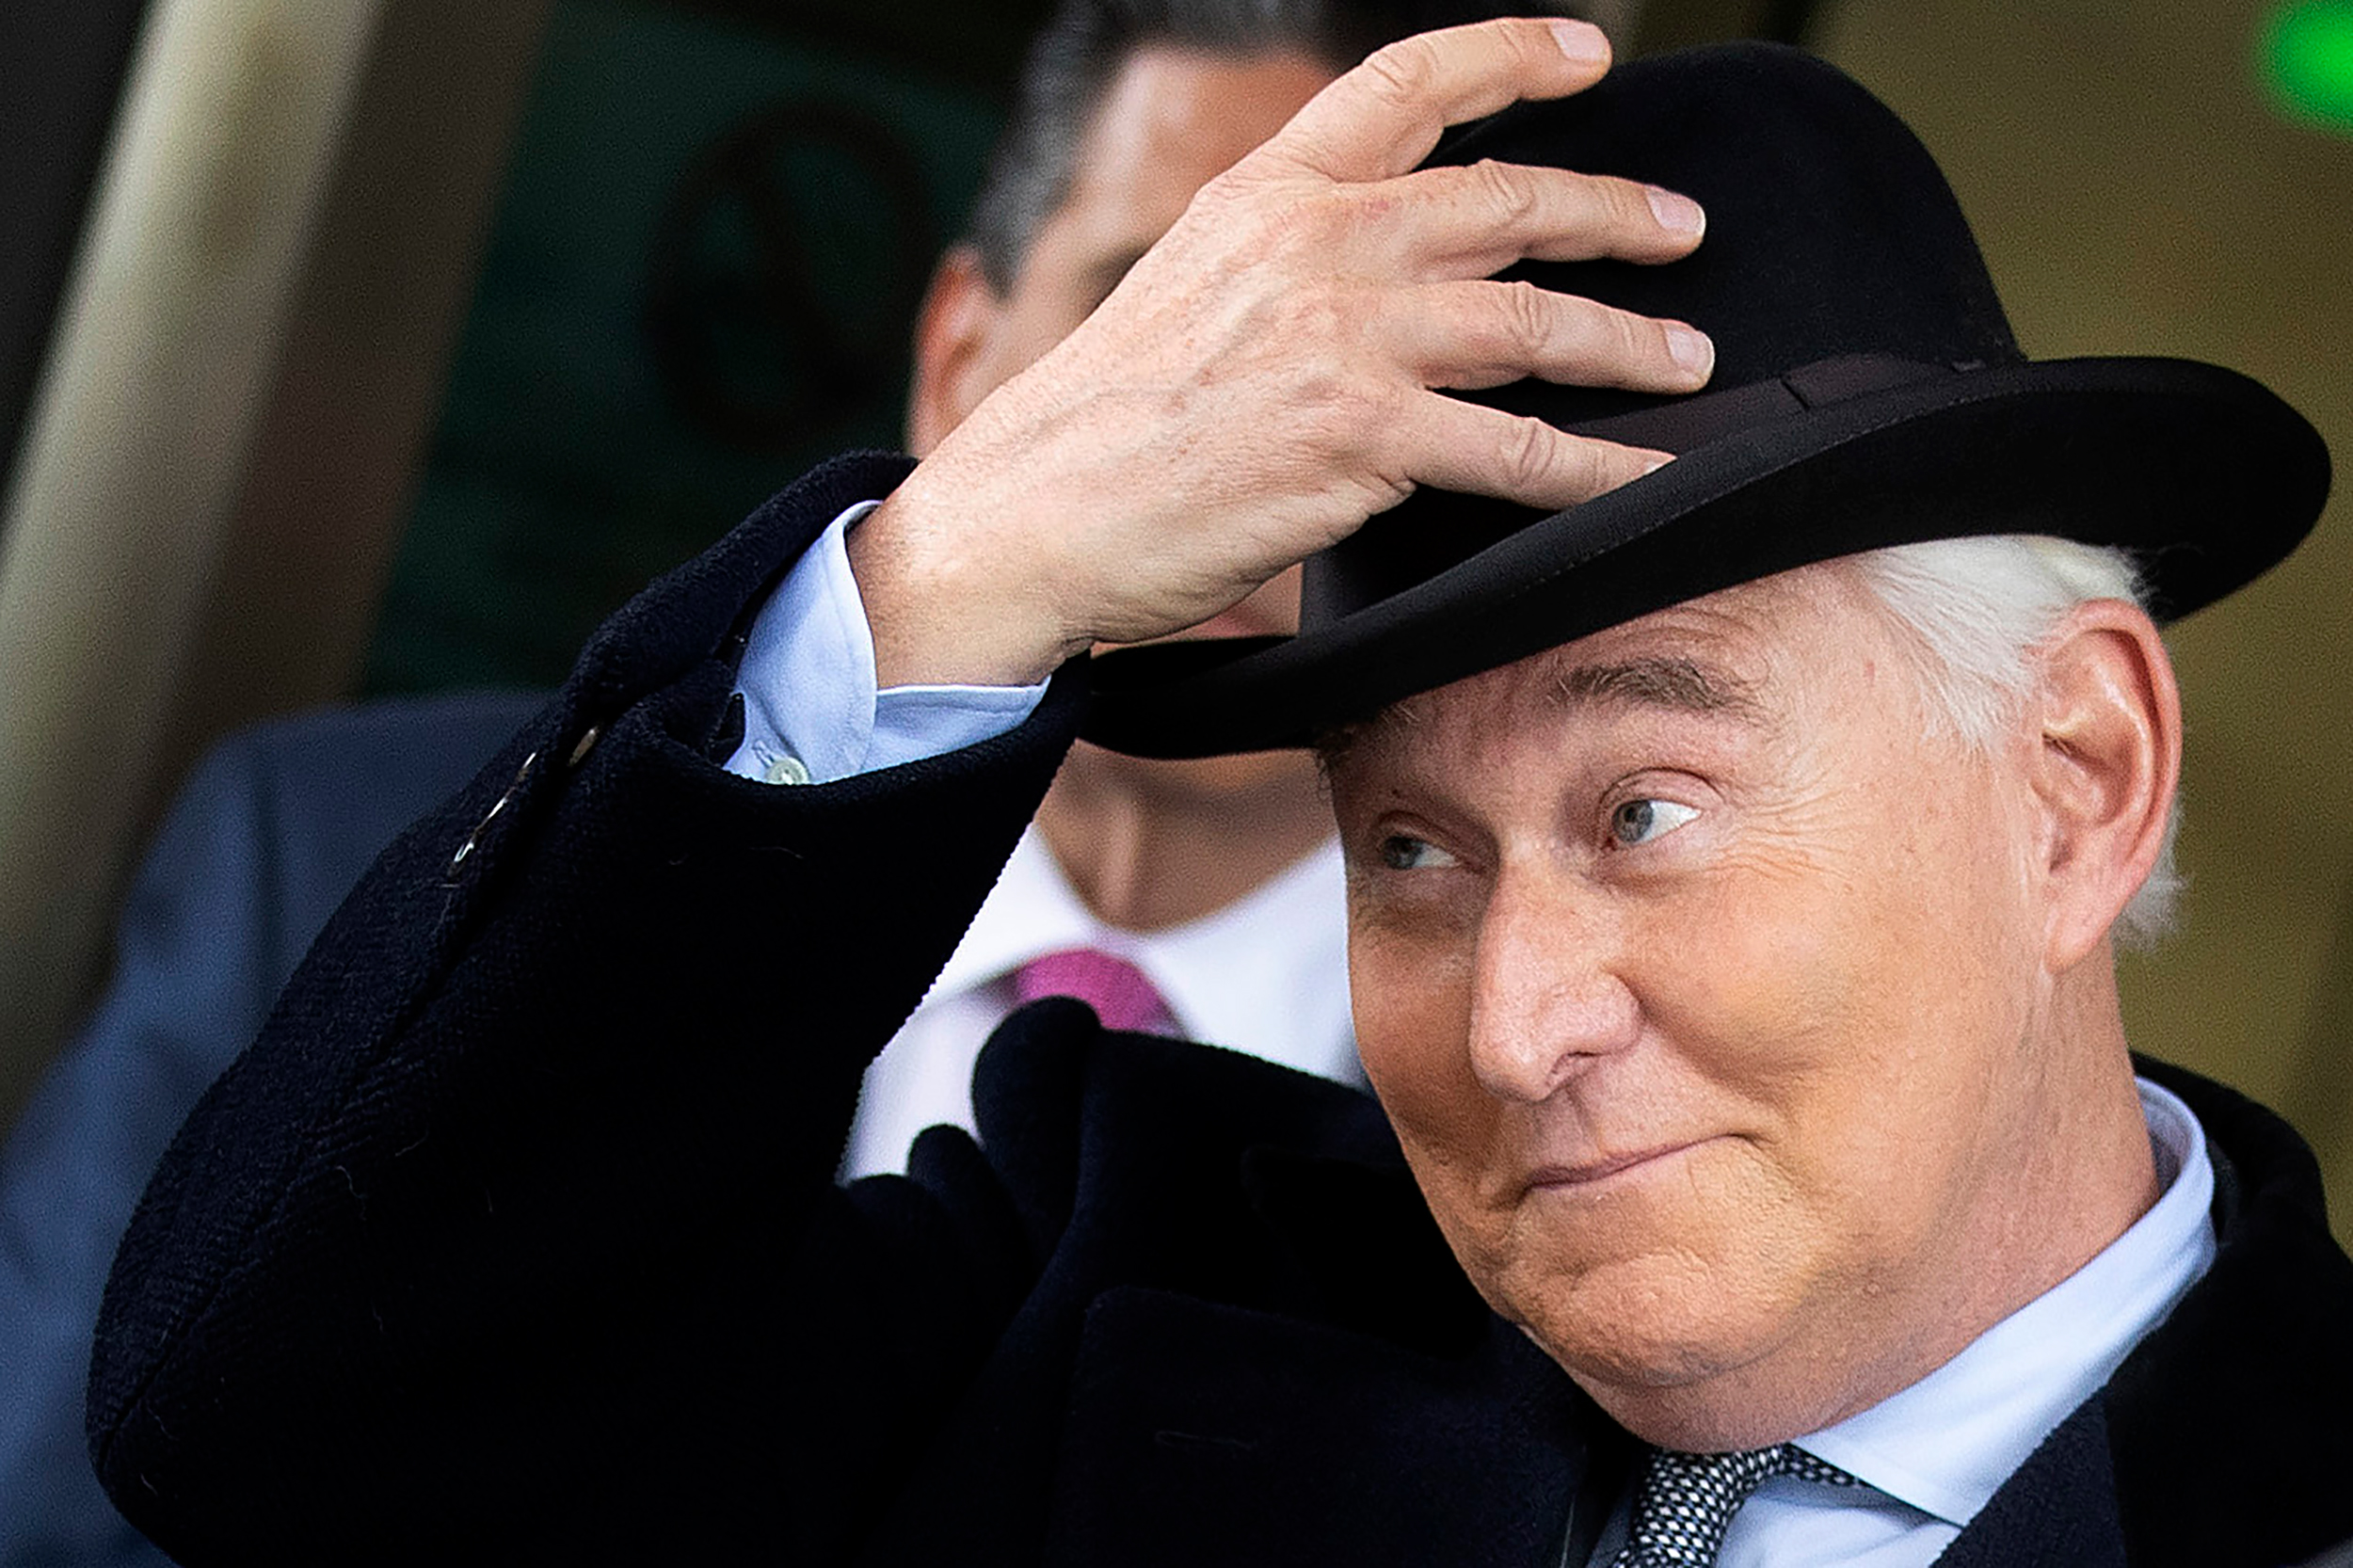 Roger Stone denies he protected Trump to secure commutation of sentence